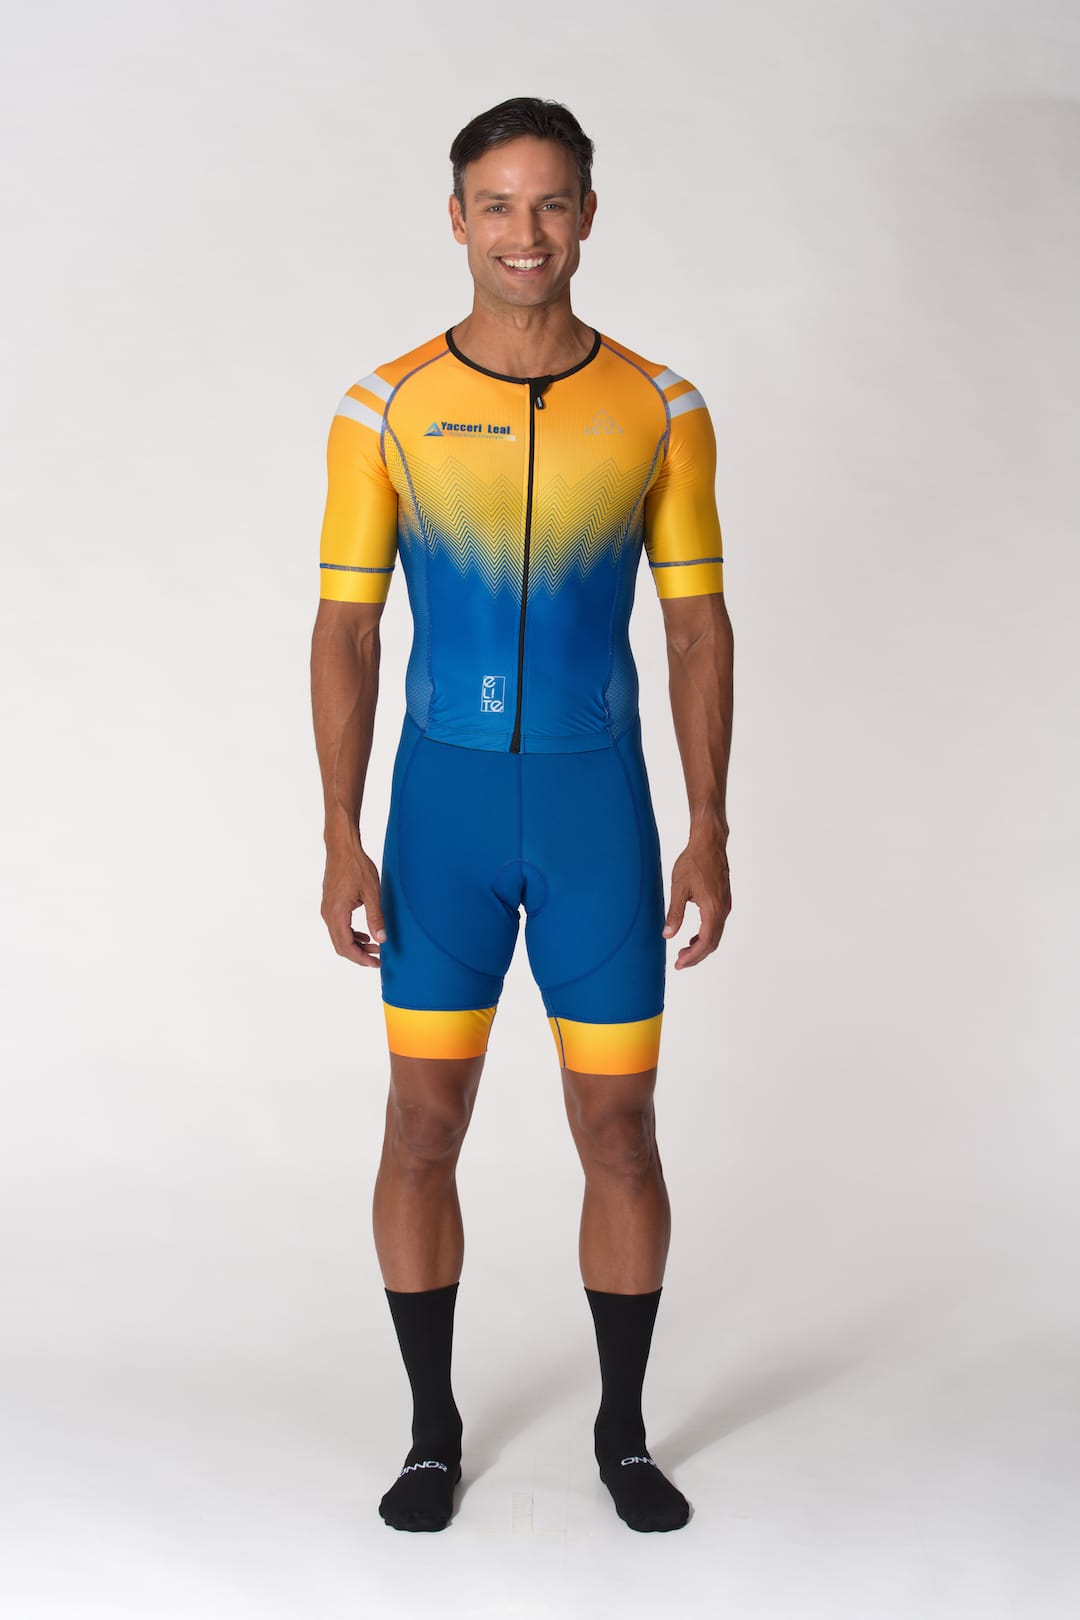 custom cycling skinsuit yellow blue no minimum order required